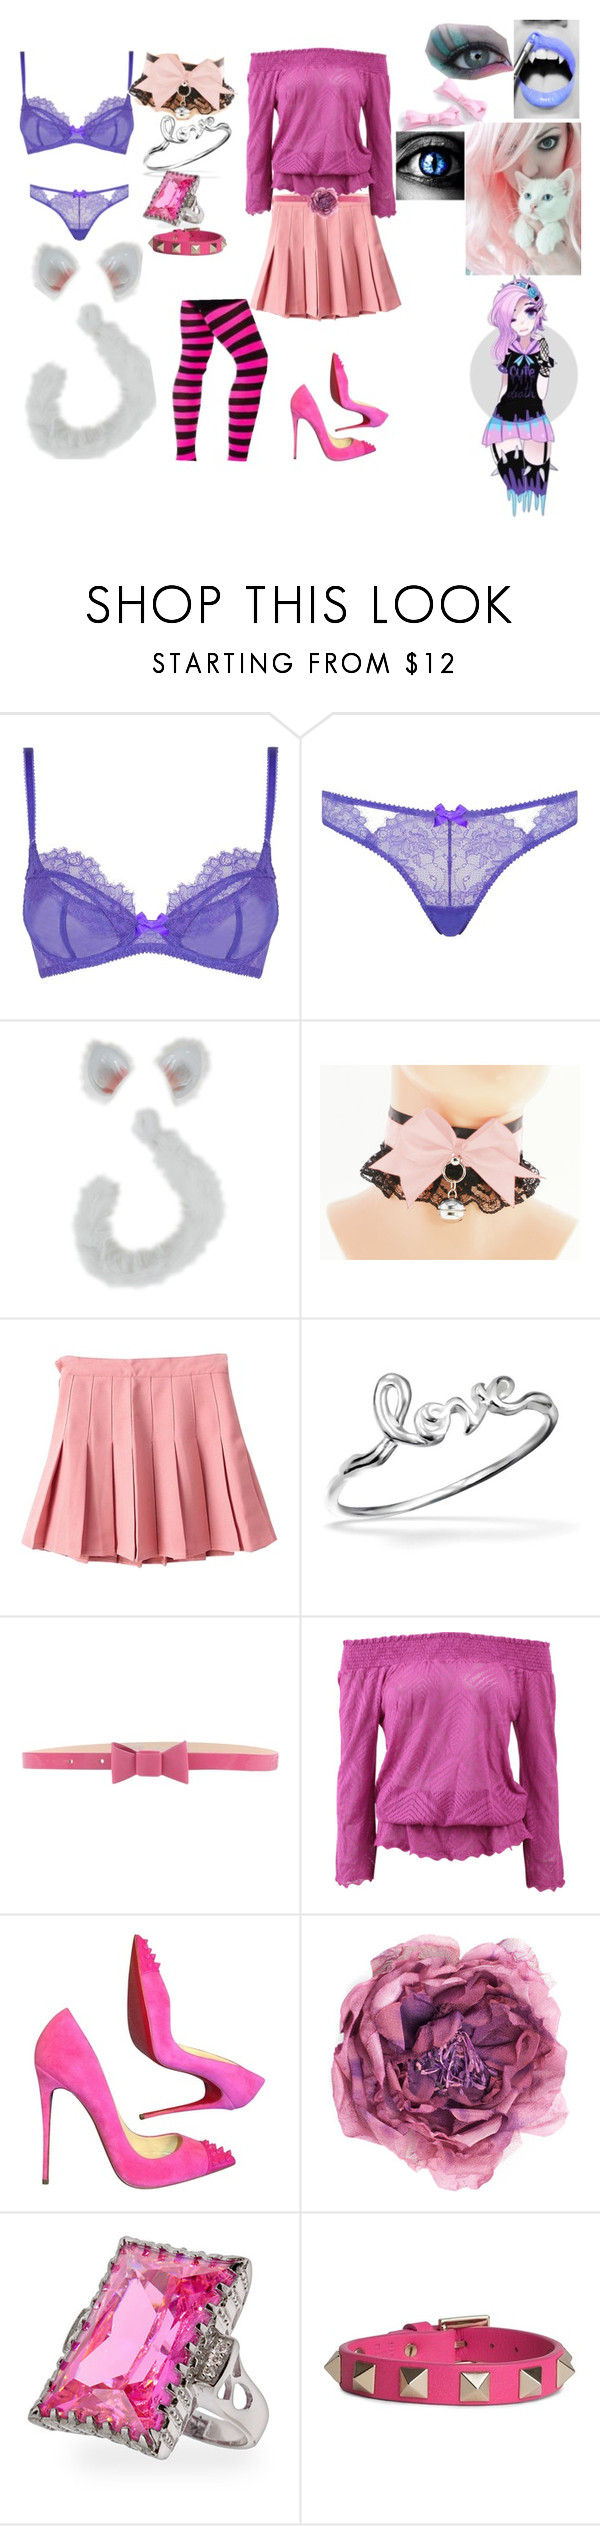 """""""Rebecca Araki // The Neko"""" by the-happy-emo ❤ liked on Polyvore featuring L'Agent By Agent Provocateur, Gosh, Blugirl Folies, Cecilia Pradomurion, Christian Louboutin, Gucci and Valentino"""